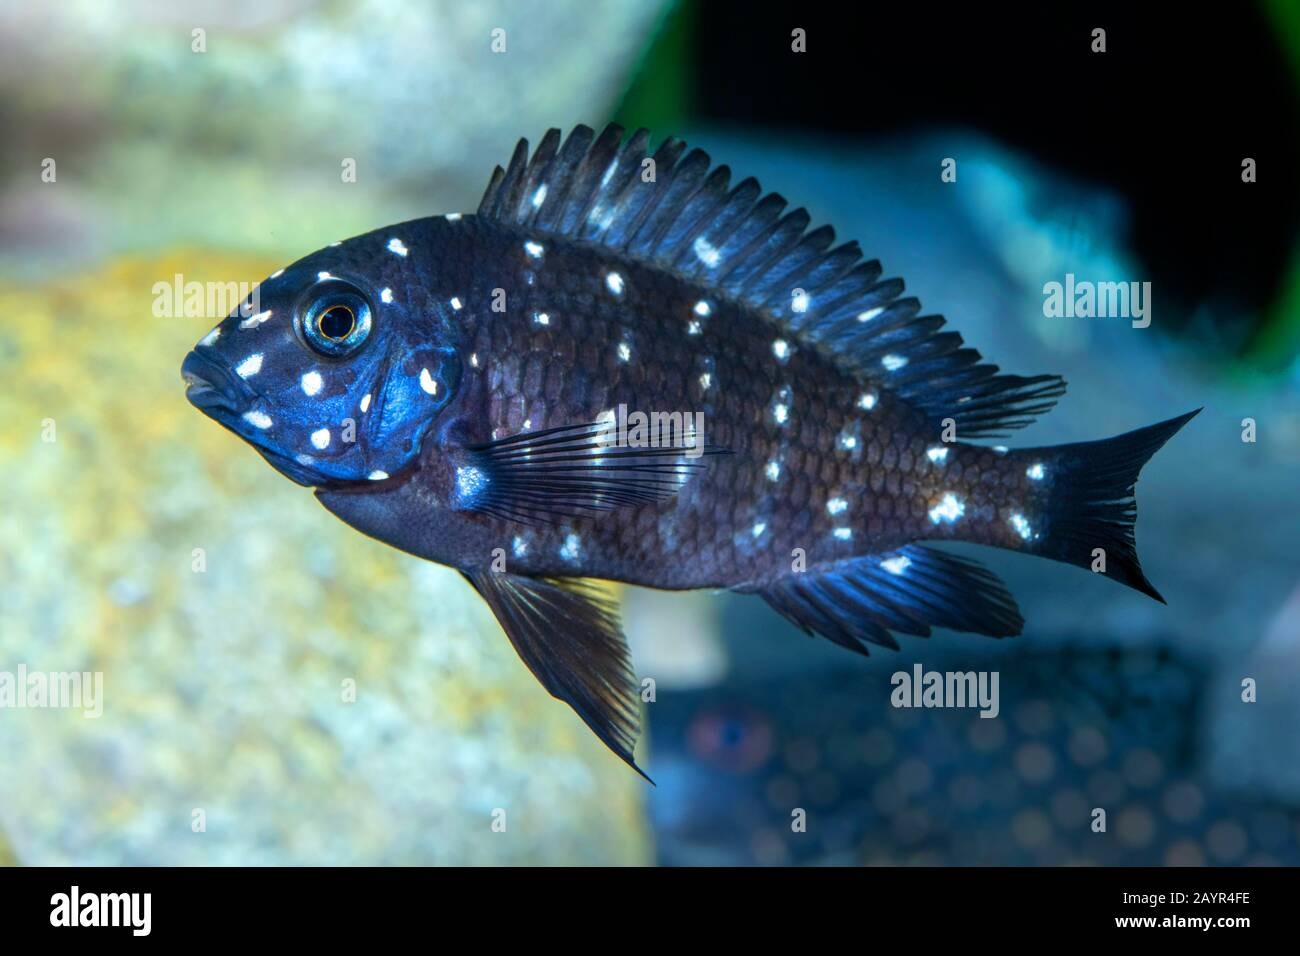 Tropheus Duboisi High Resolution Stock Photography And Images Alamy